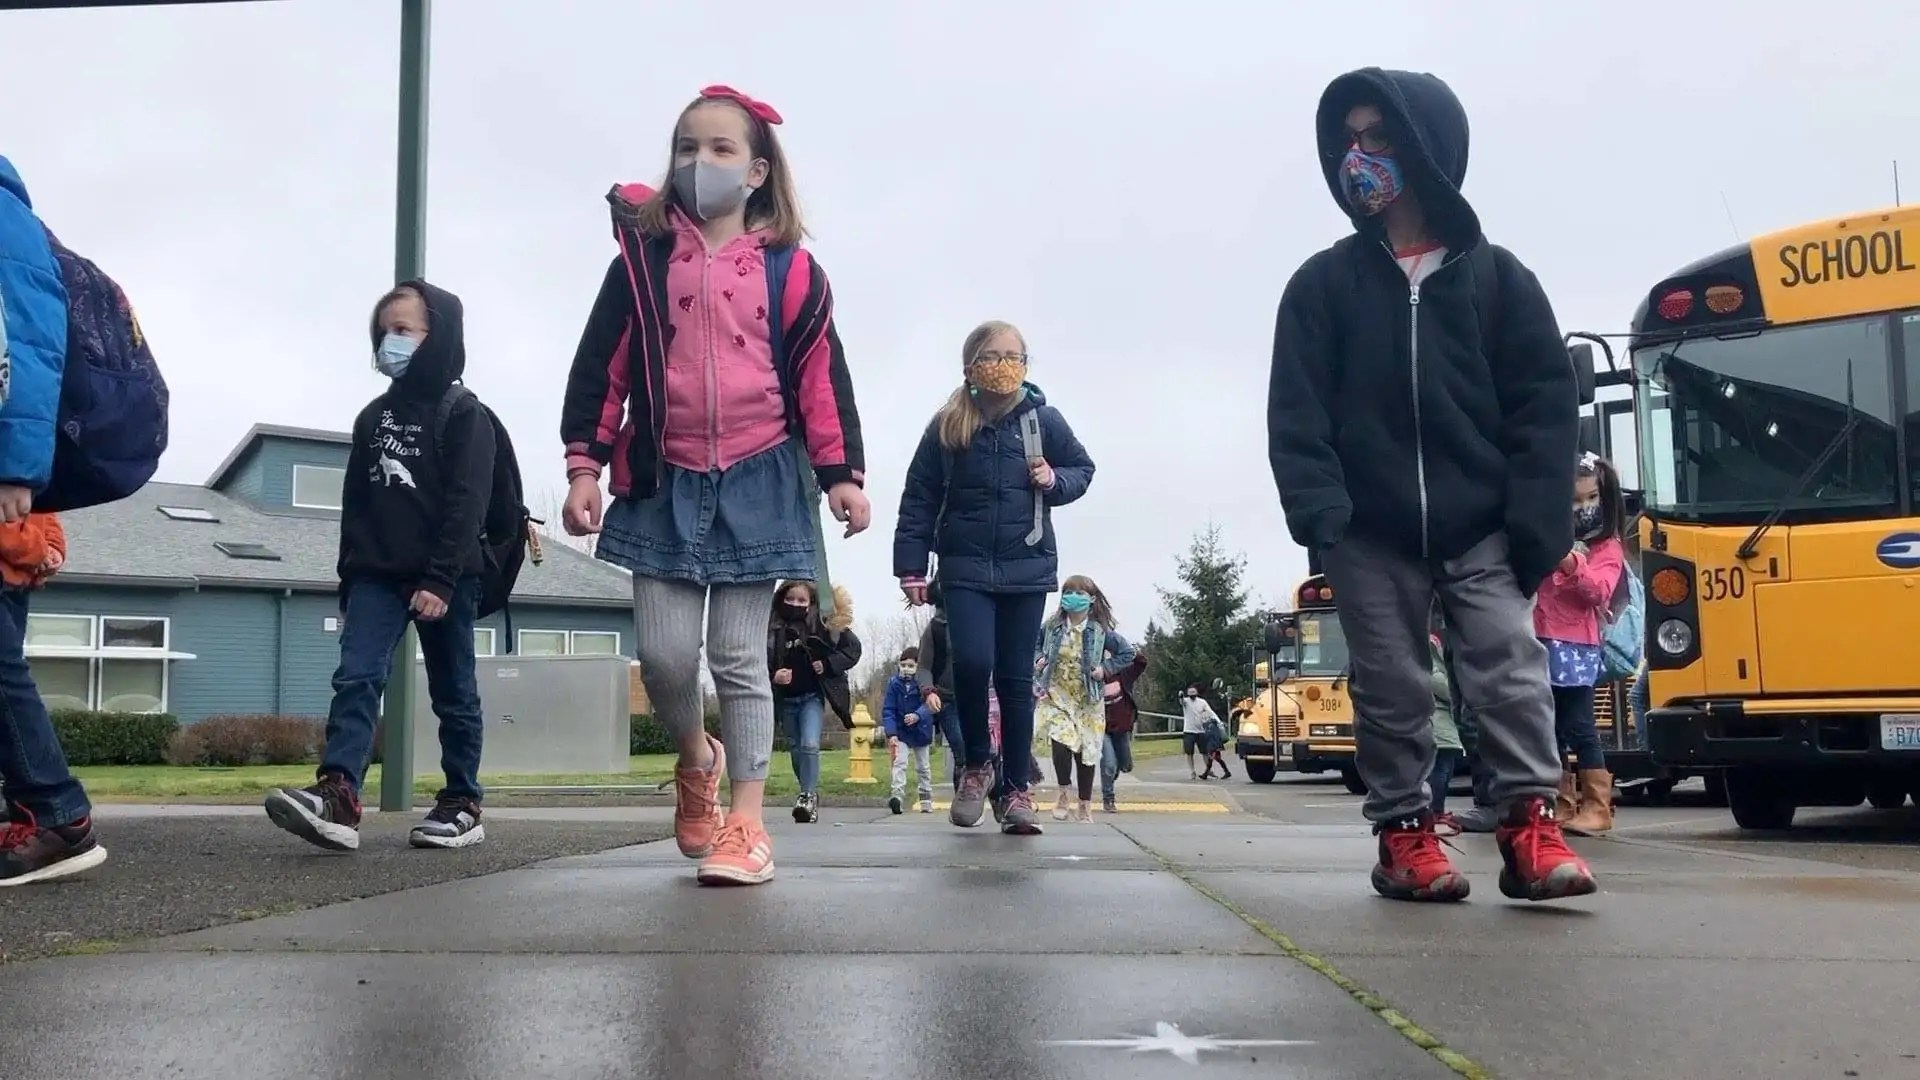 Elementary students walking away from a bus, wearing COVID-19 masks.